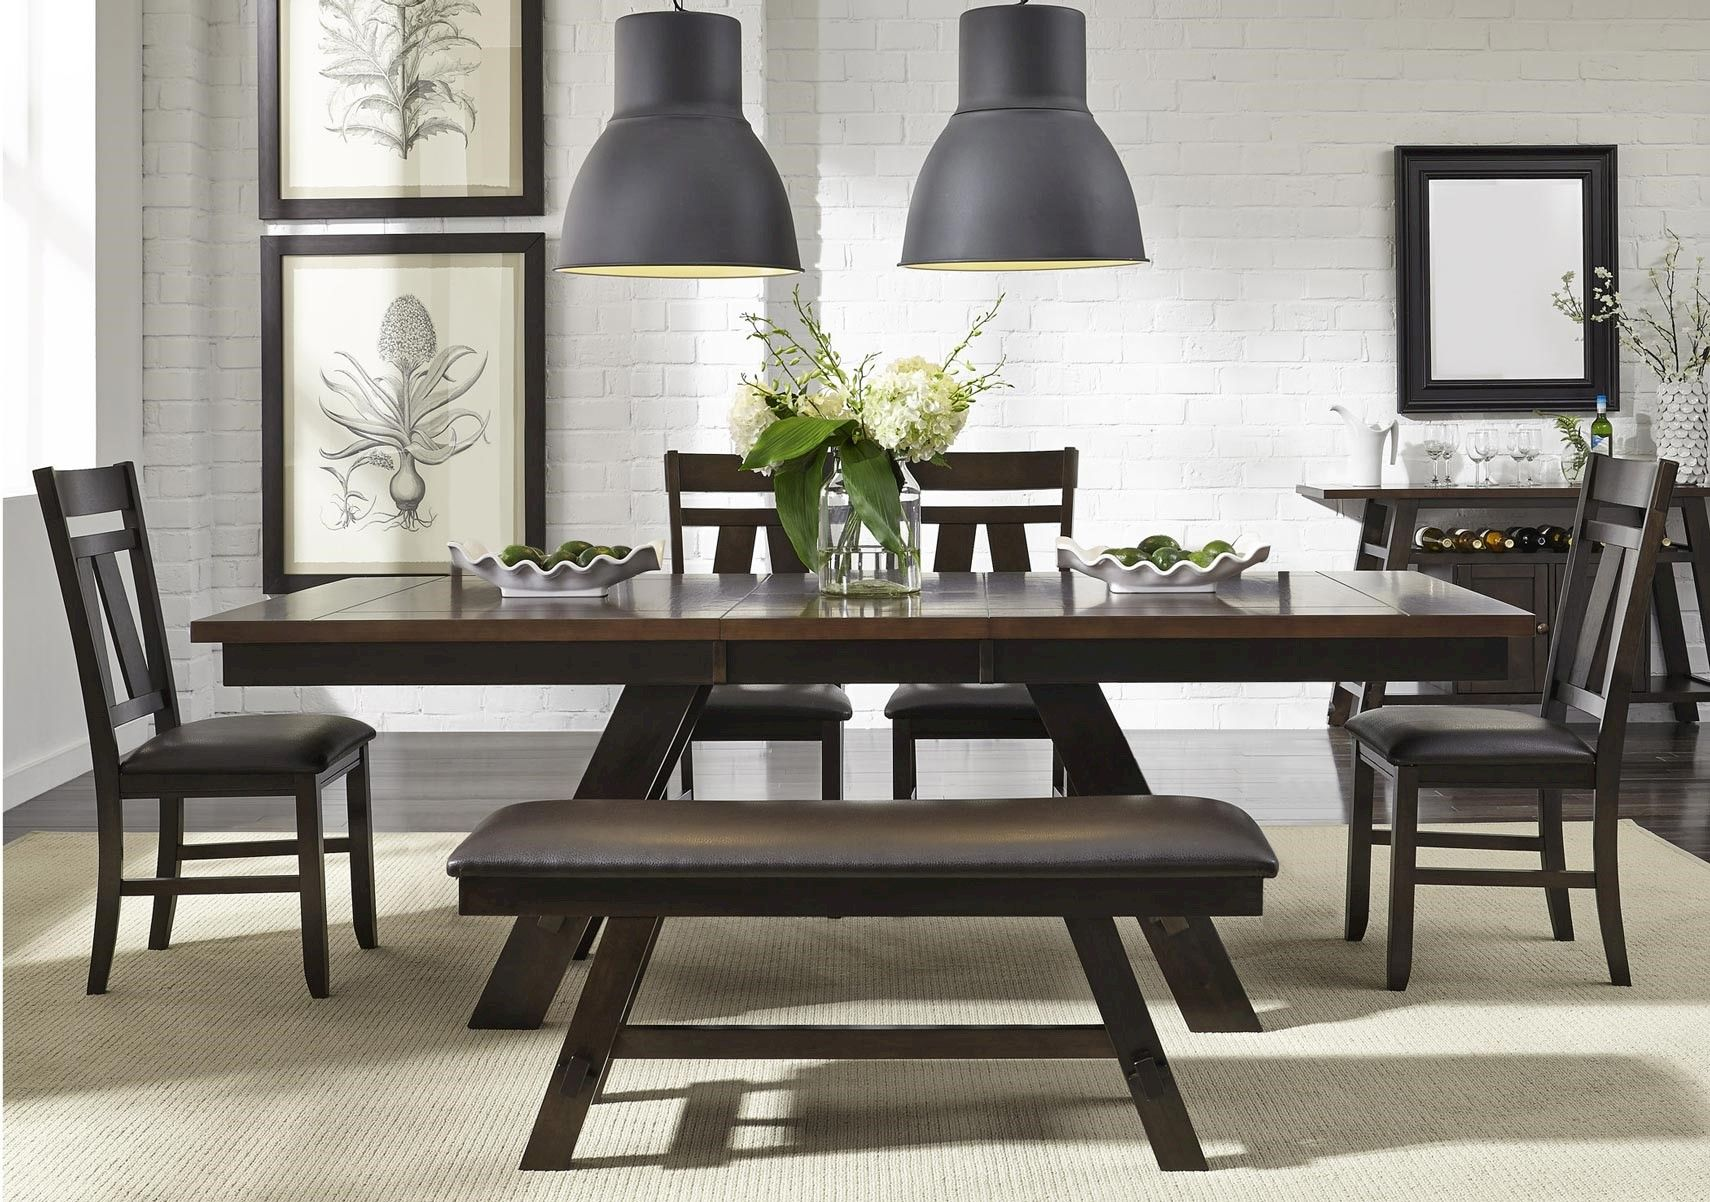 Lacks | Lawson 6-Pc Dining Set | Outdoor furniture stores ... on Outdoor Living Shops Near Me id=34371